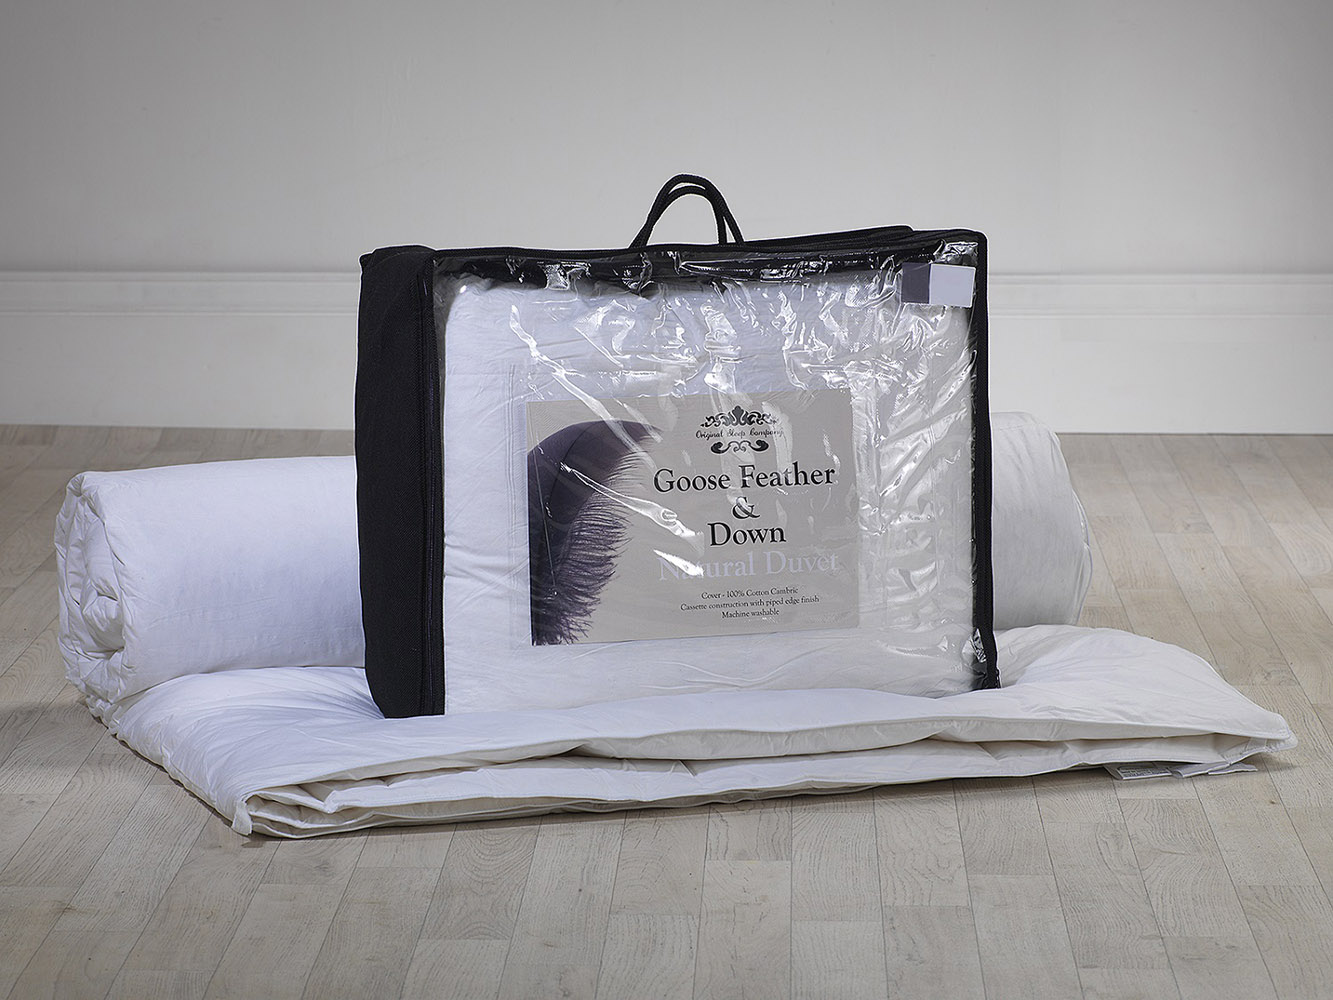 4.5 & 9.5 Tog - Goose Feather and Down All Seasons Duvet